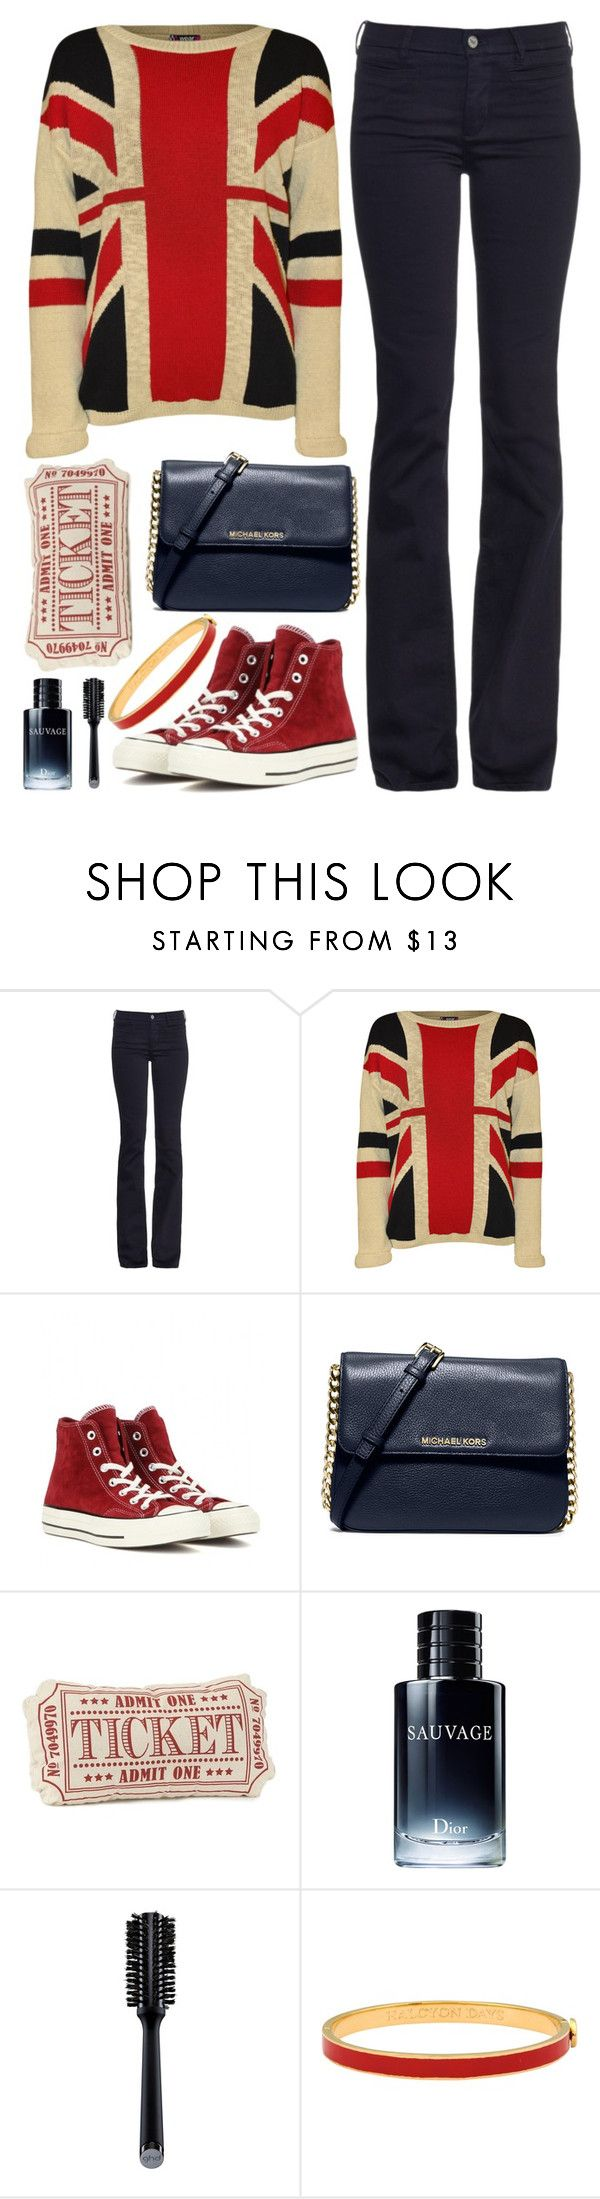 """""""Going to the Cinema"""" by saraishi ❤ liked on Polyvore featuring MiH, WearAll, Converse, MICHAEL Michael Kors, Christian Dior, GHD, Halcyon Days, women's clothing, women's fashion and women"""